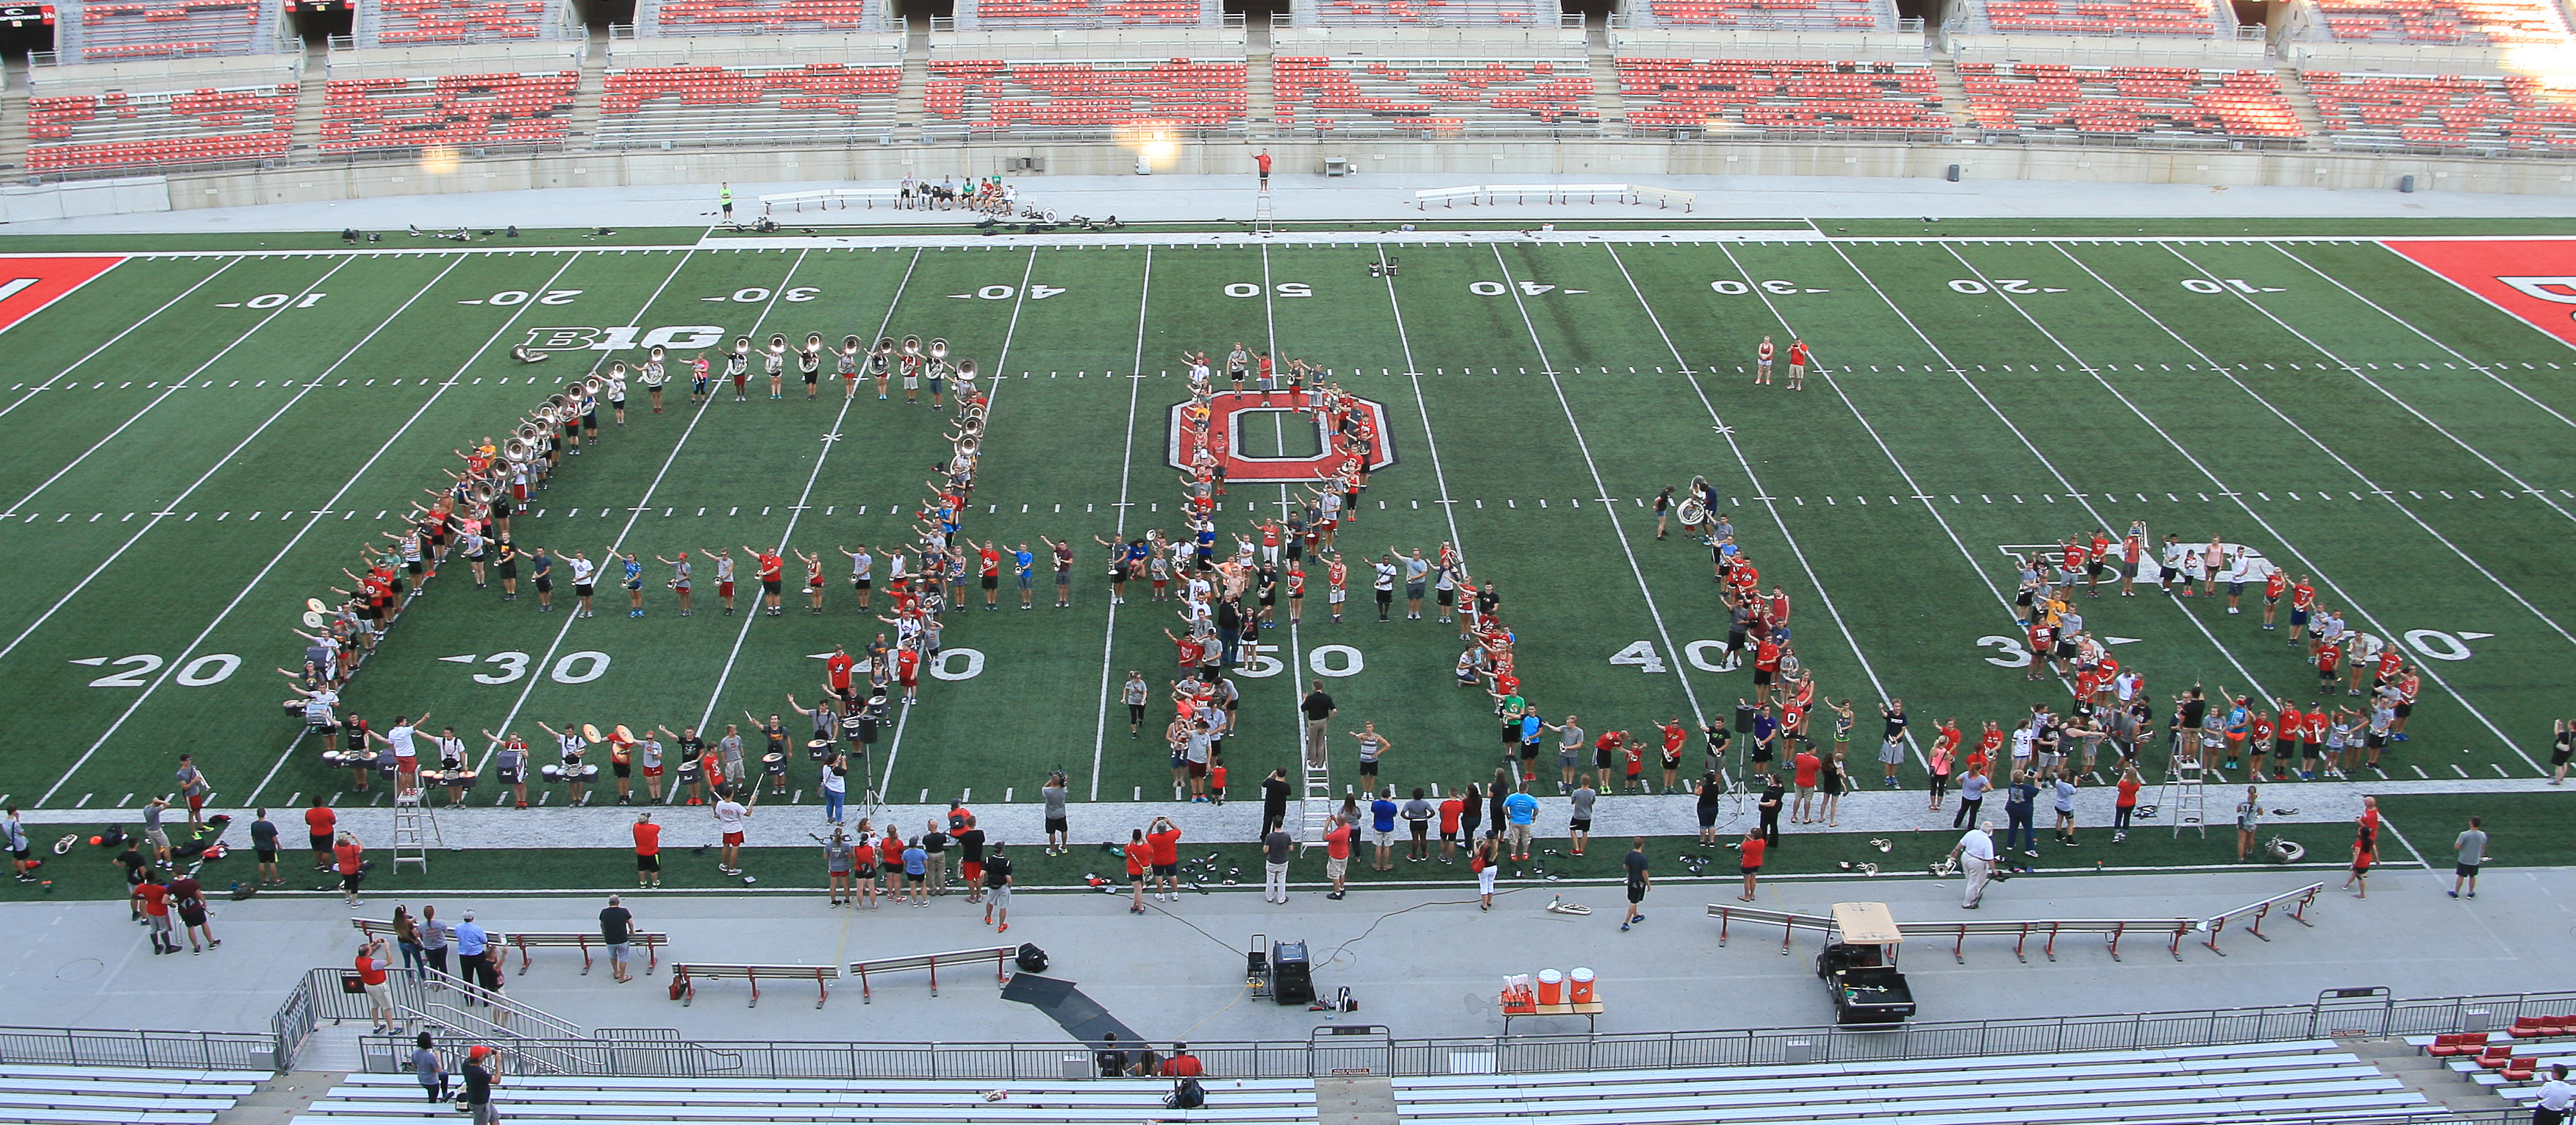 Pediatric cancer patients and families join TBDBITL in Script Ohio